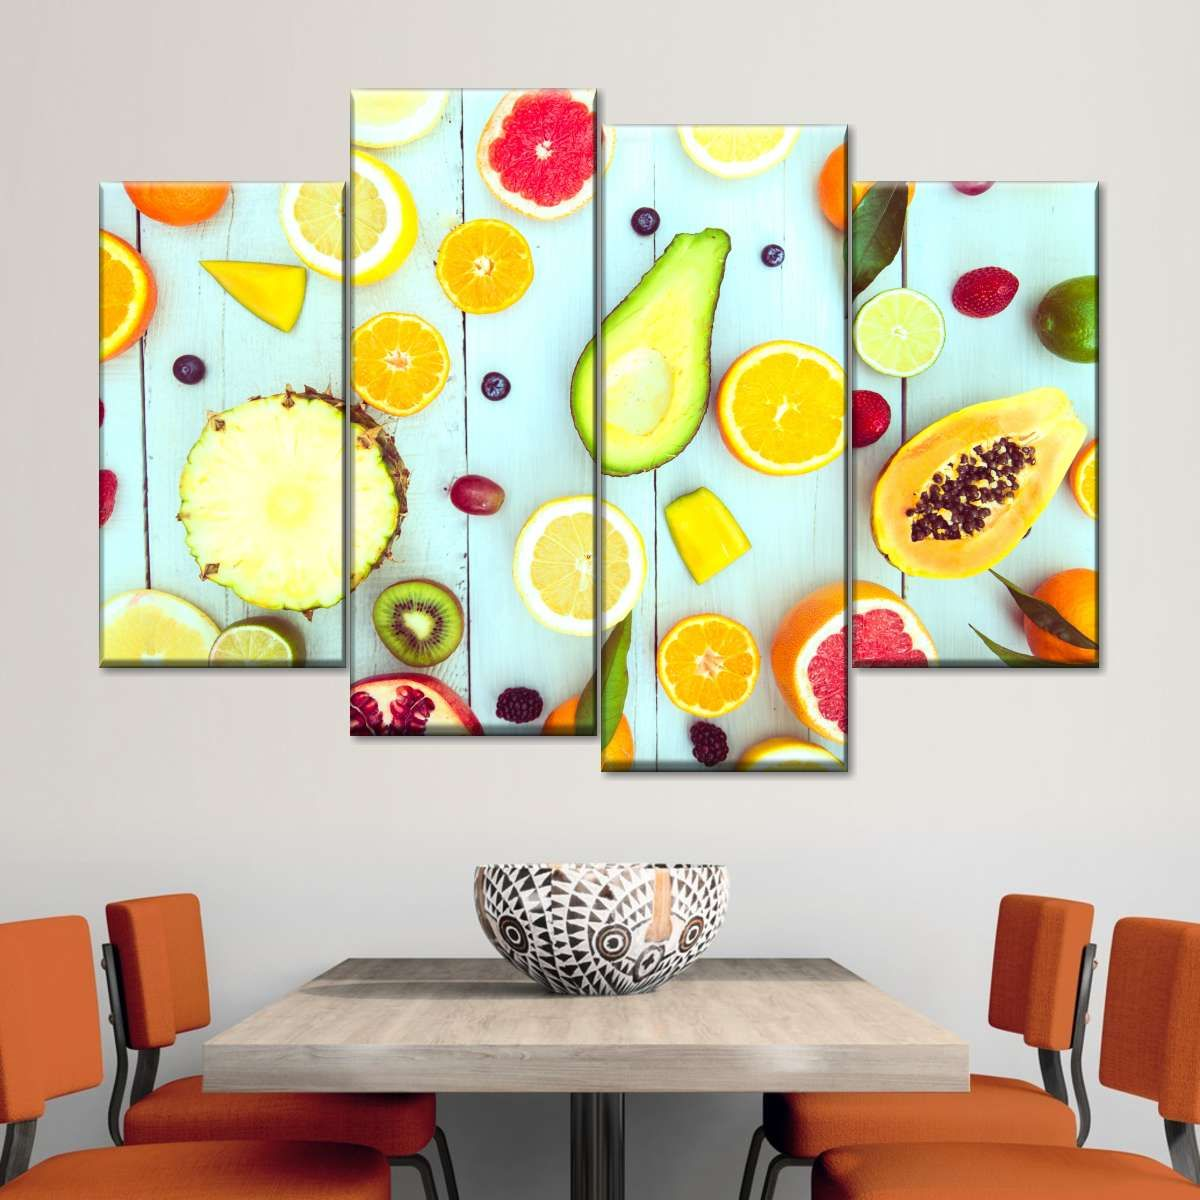 Tutti Frutti Multi Panel Canvas Wall Art will make your kitchen or restaurant aesthetically appealing. This beautiful canvas print is sure to stimulate your taste buds and get you ready for the next meal!